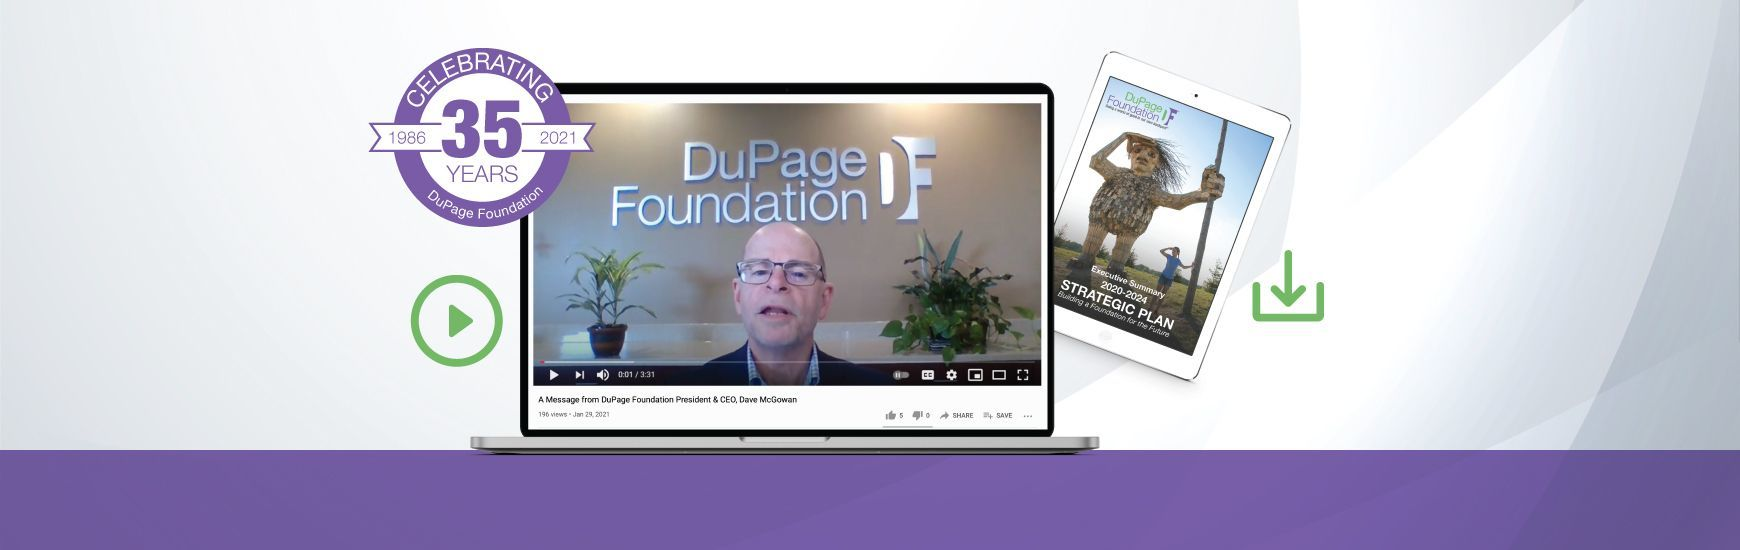 DuPage Foundation Milestones